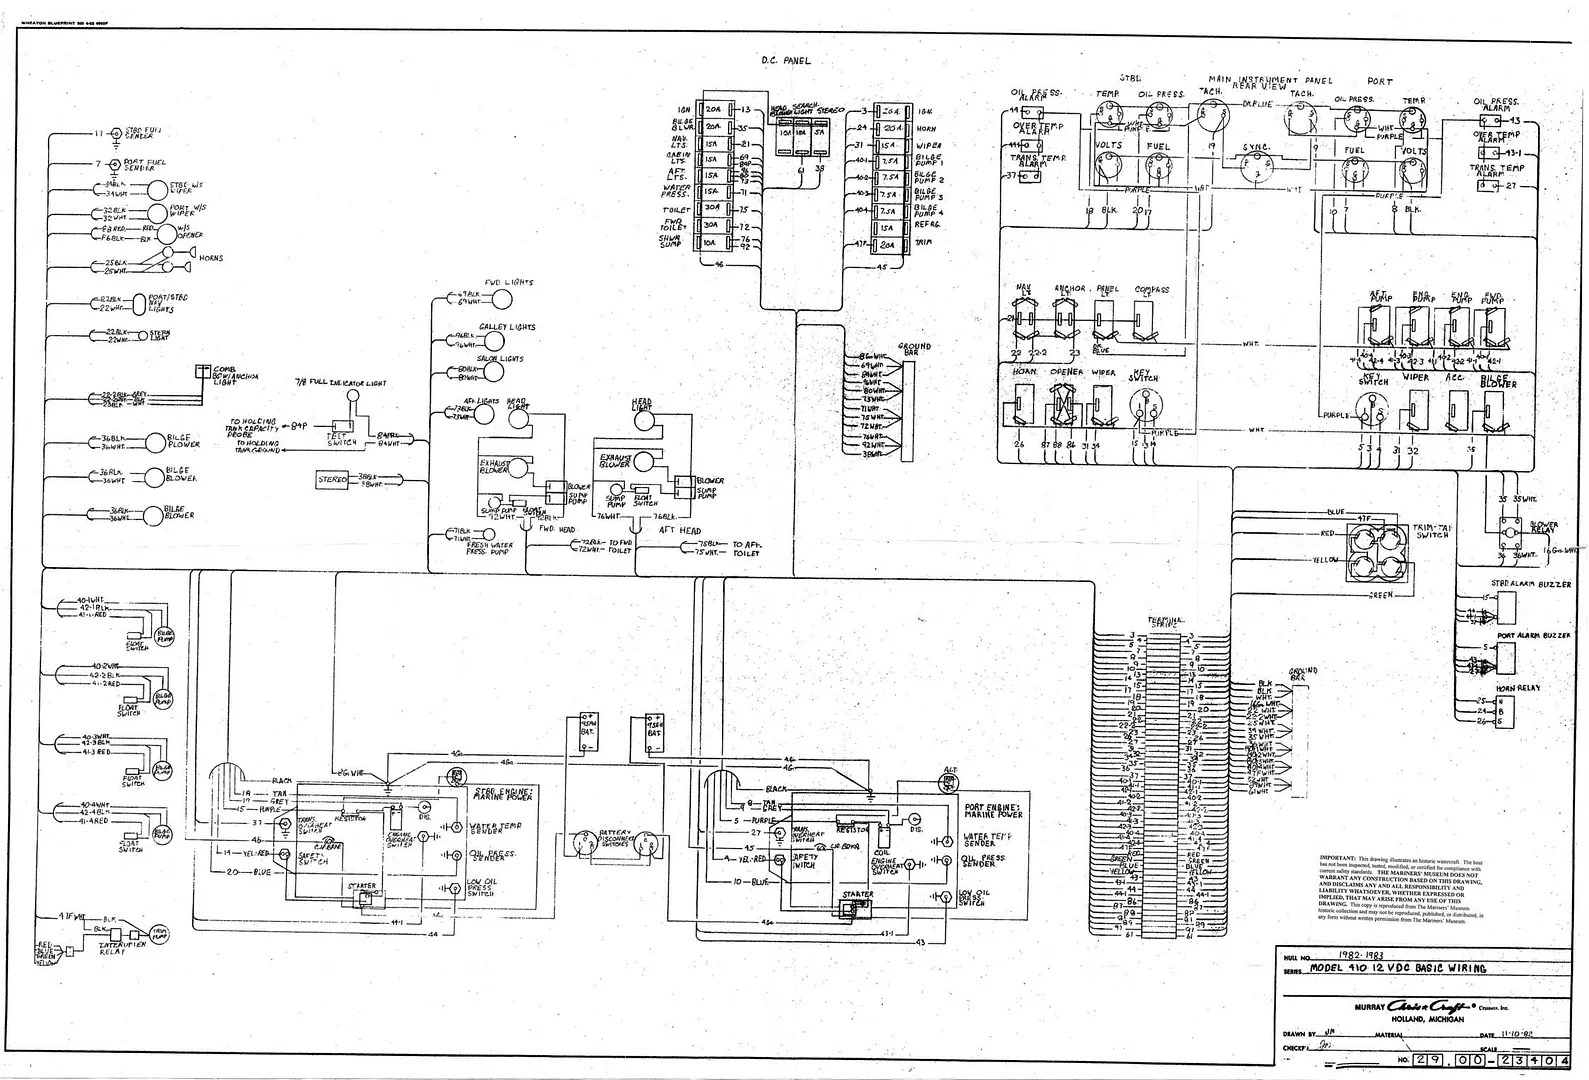 smoker-craft-pontoon-with-150-hp-mercury-trim-wiring-diagram-12 Quicksilver Paralift Jack Plate Wiring Diagram on cat5e keystone, aviation headset, home phone, old 4 wire phone, telephone 4 wire phone, female headphone, mono stereo, rj45 keystone, guitar output, iphone headphone, 3 5 mm stereo,